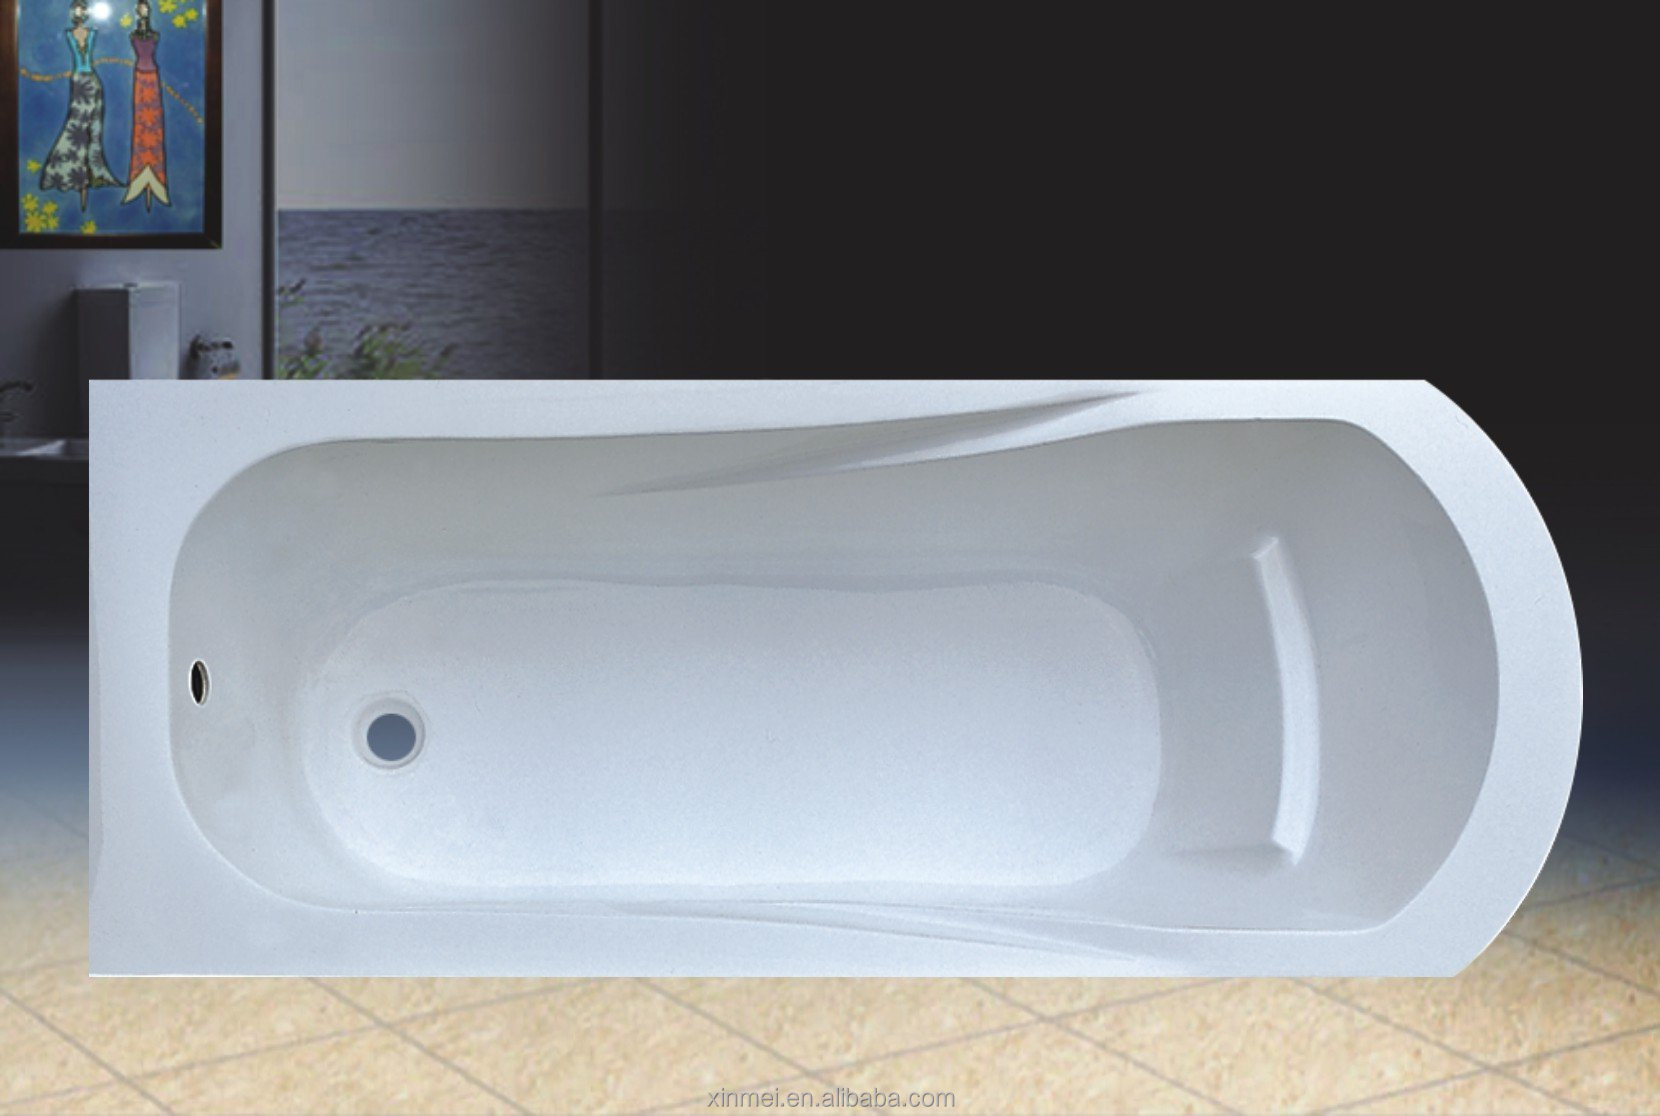 Top Quality Portable Hot Tub Freestanding Bathtub Sizes Plastic Portable Bath